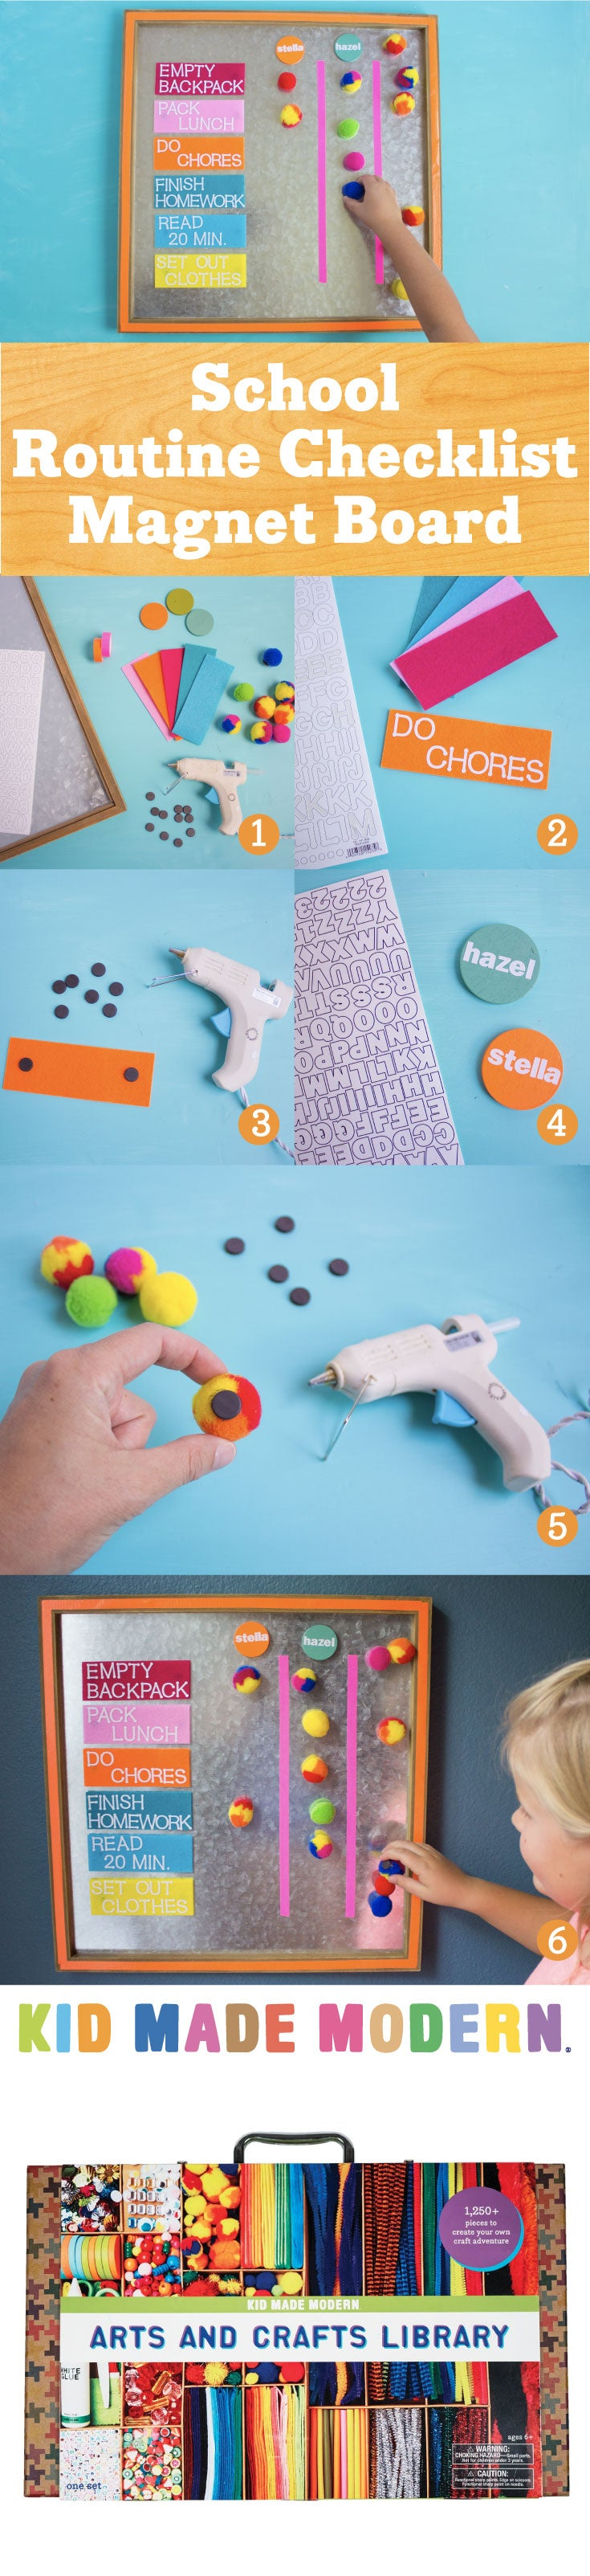 Magnetic After School Checklist Pinterest